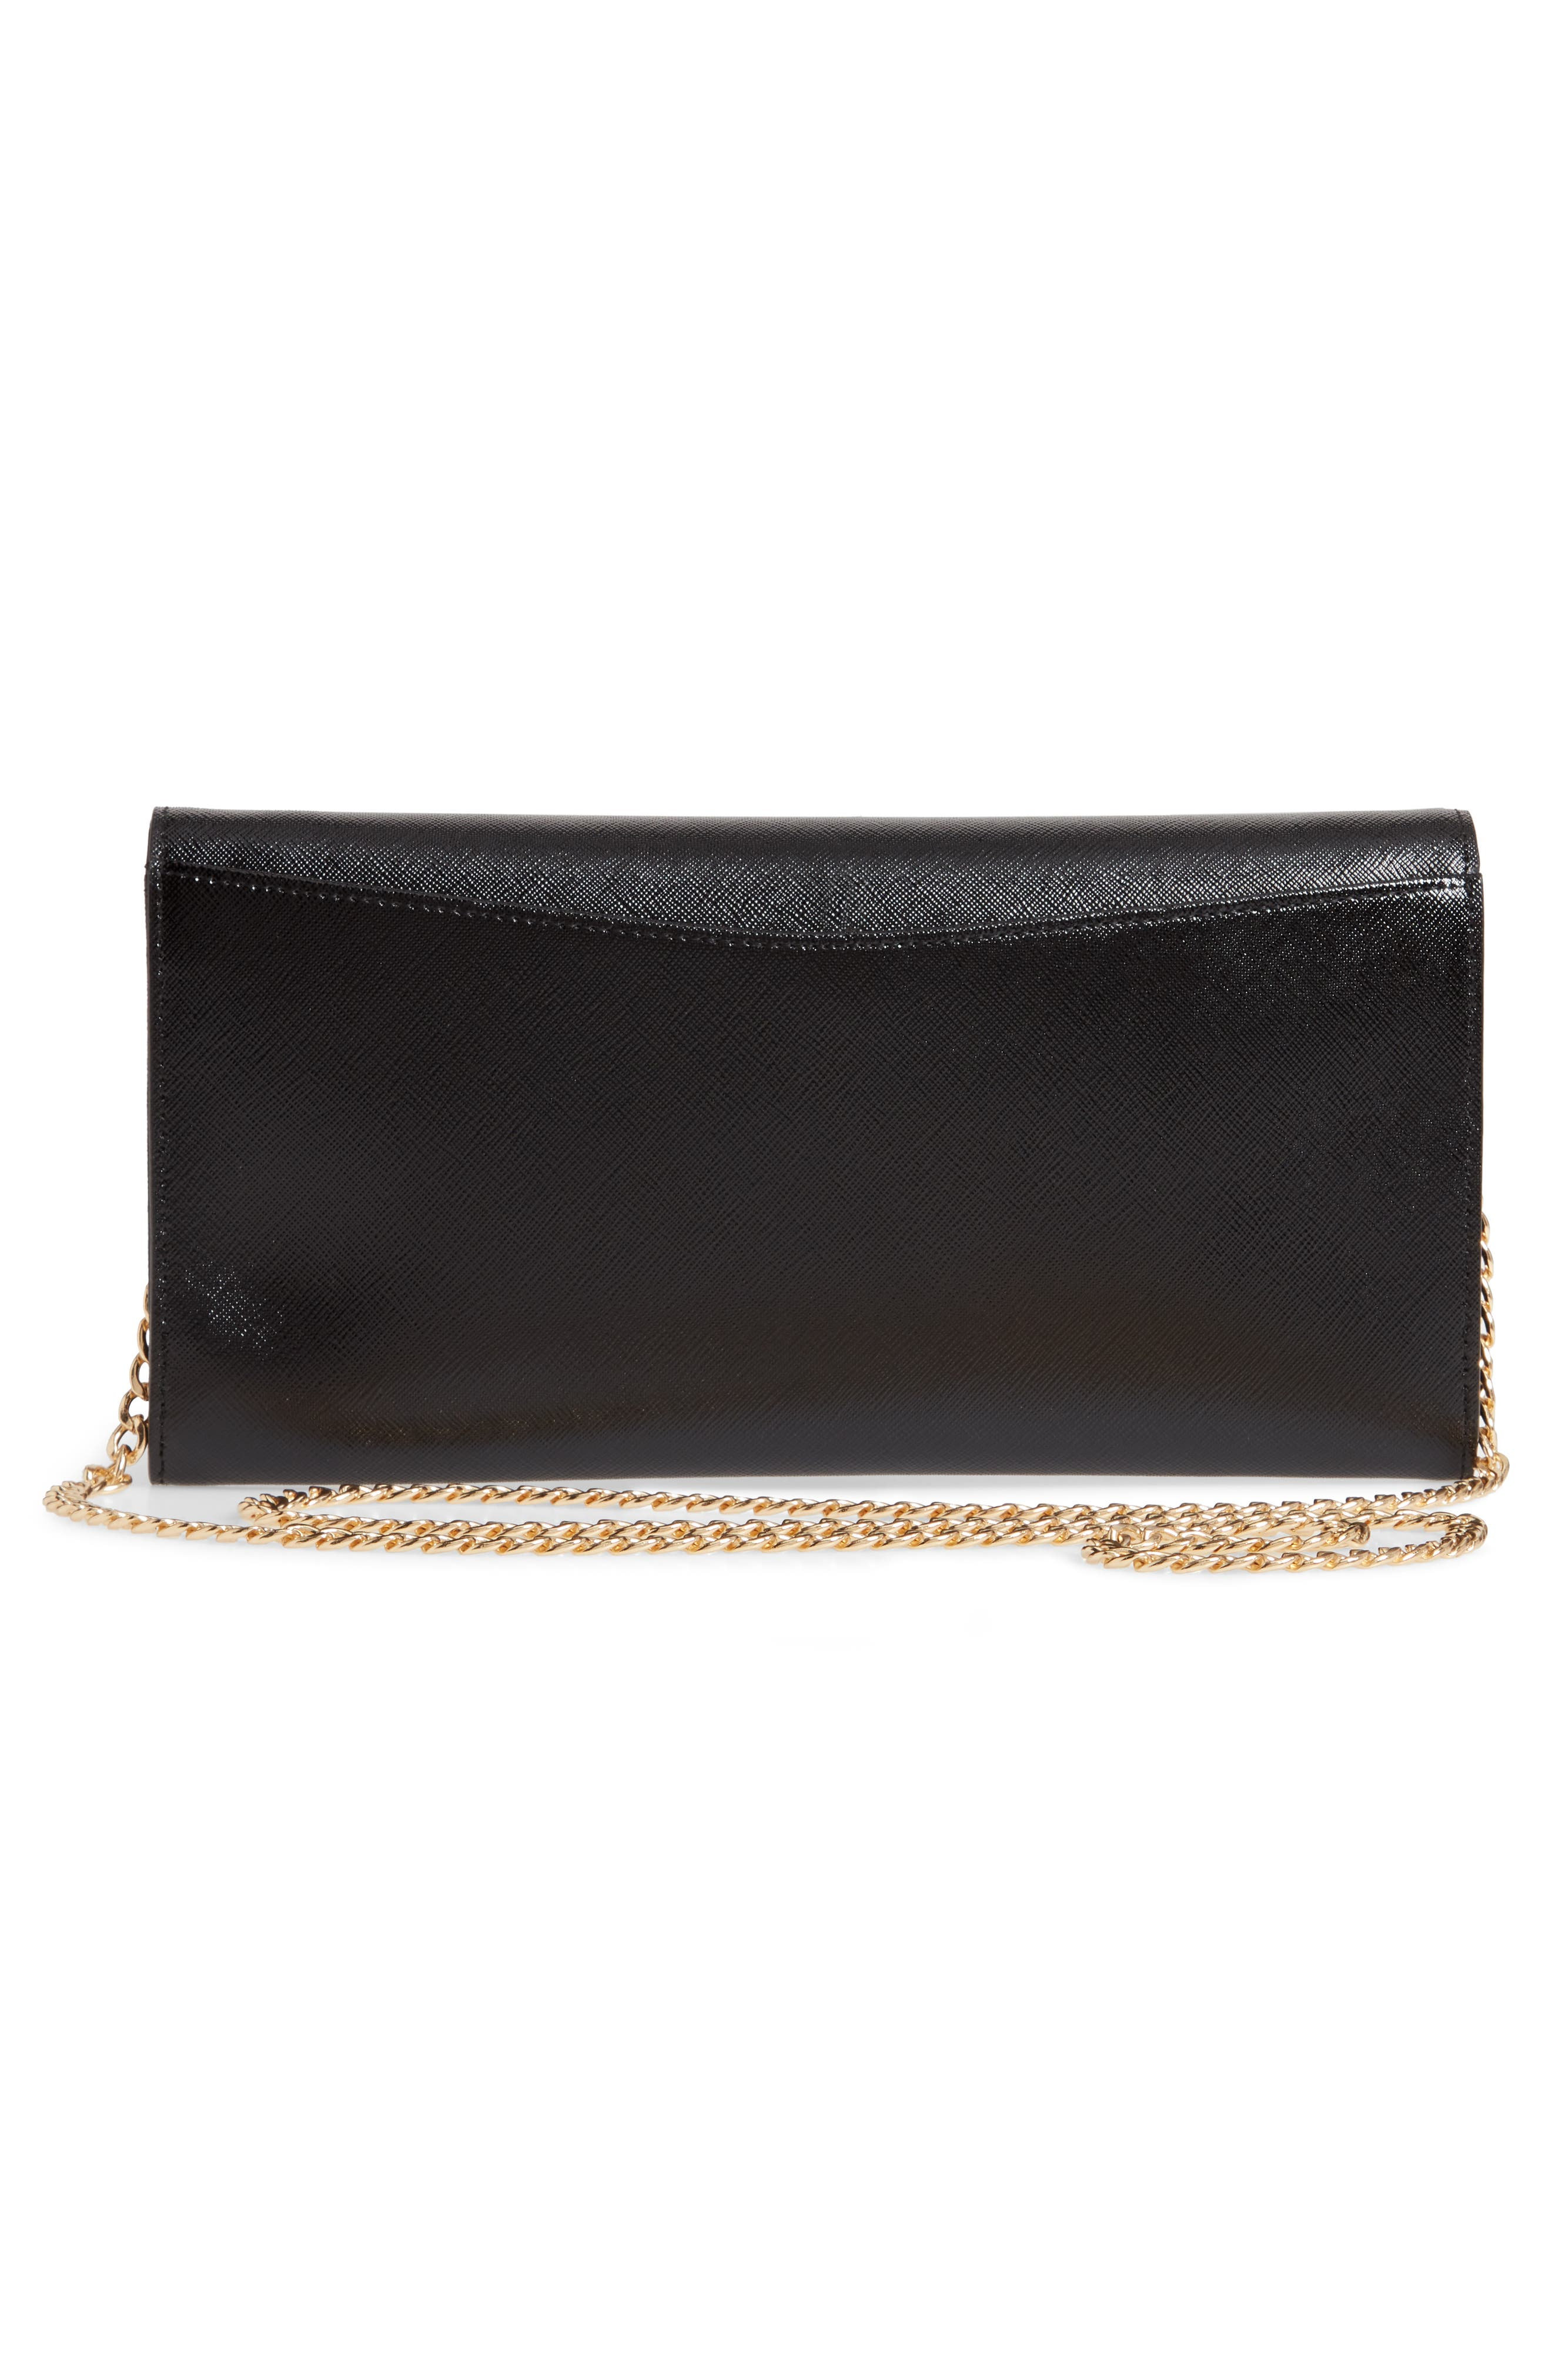 NORDSTROM, Selena Leather Clutch, Alternate thumbnail 3, color, BLACK